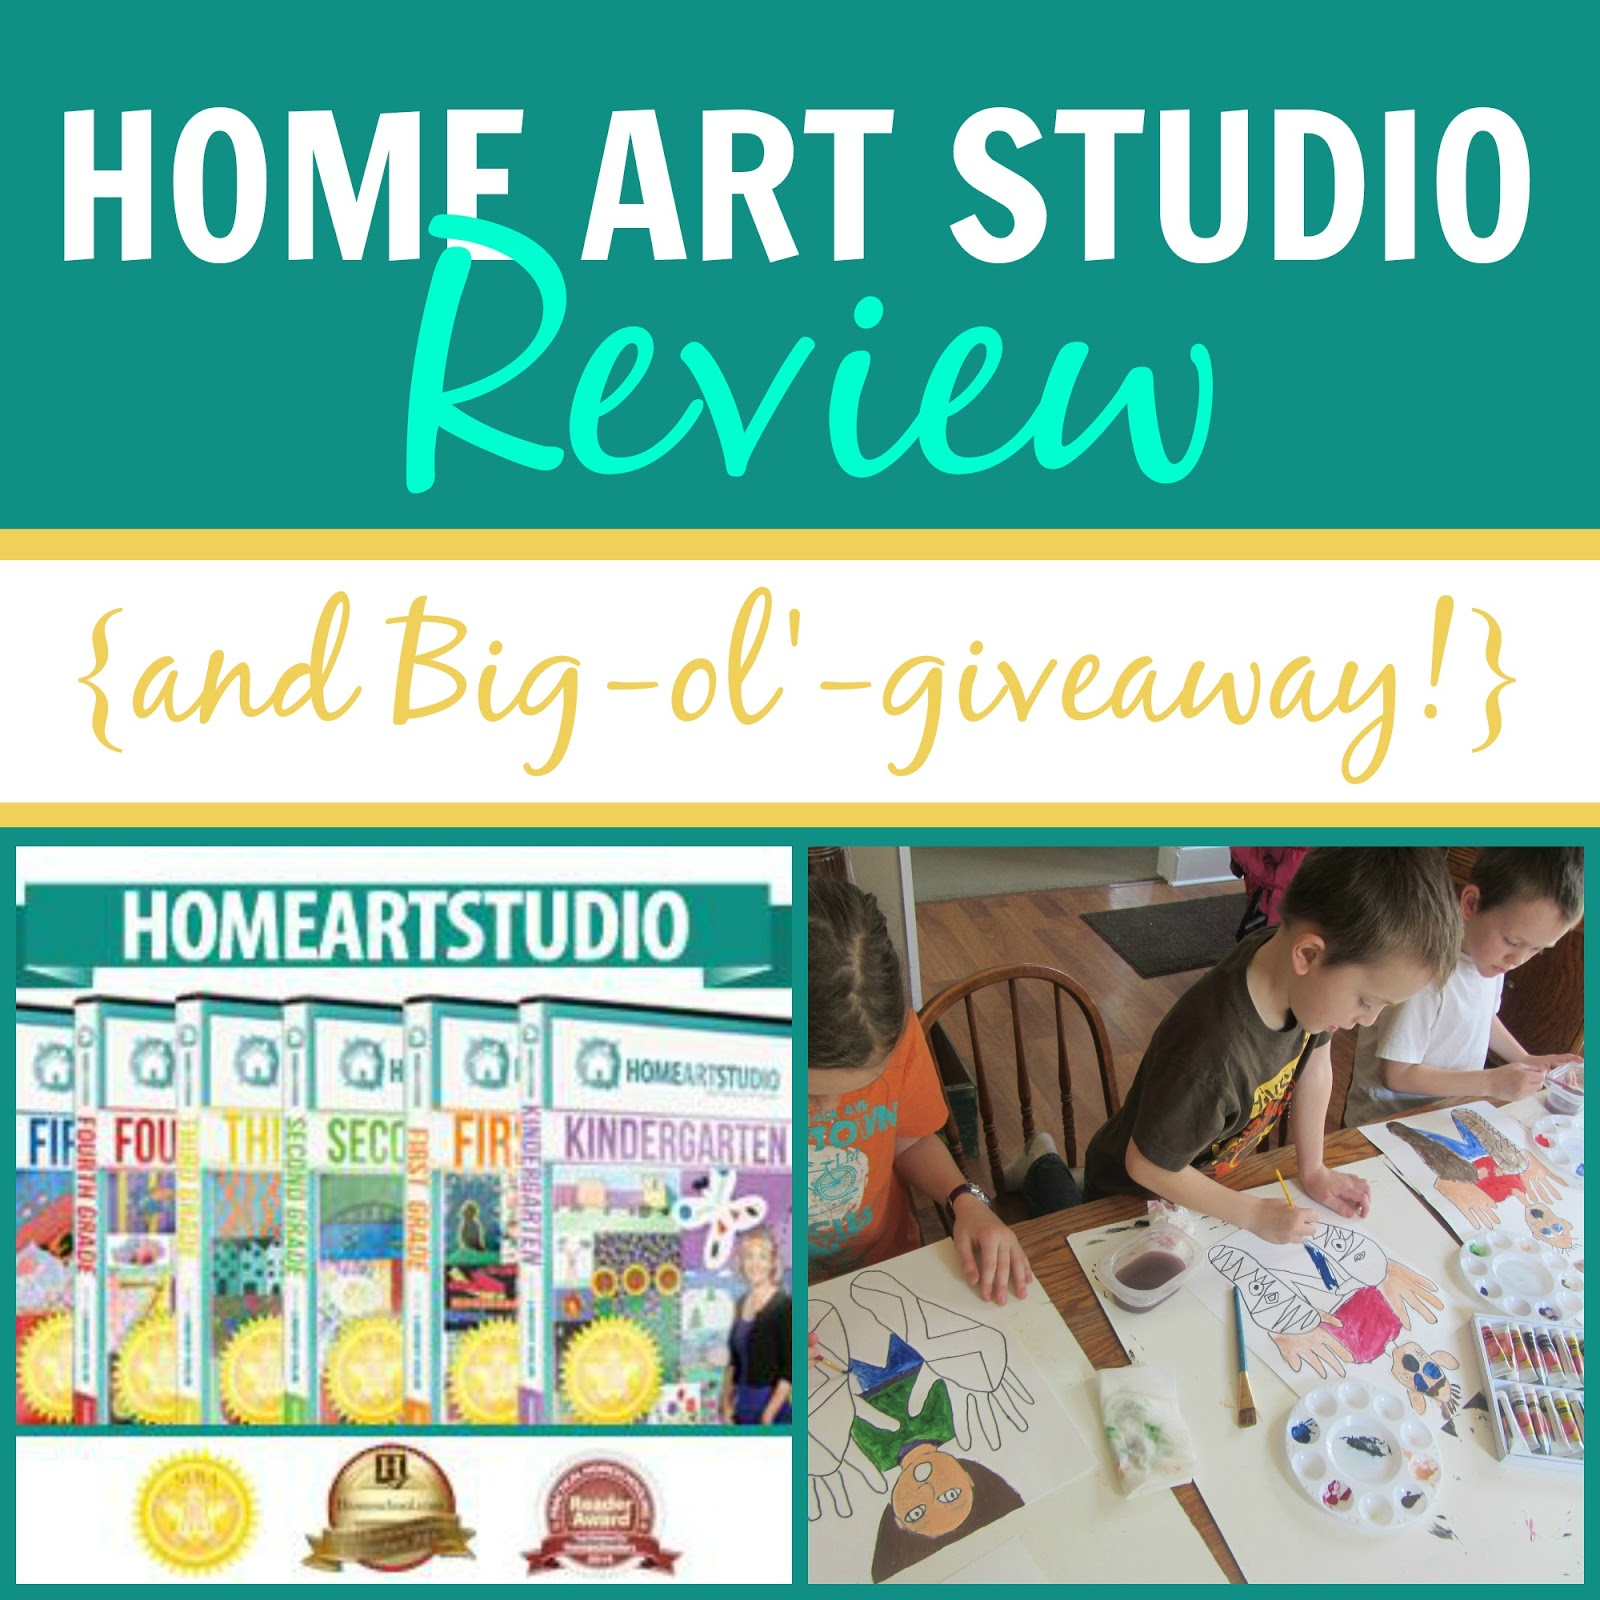 Home Art Studio: Review and Big-ol'-giveaway! {The Unlikely Homeschool}